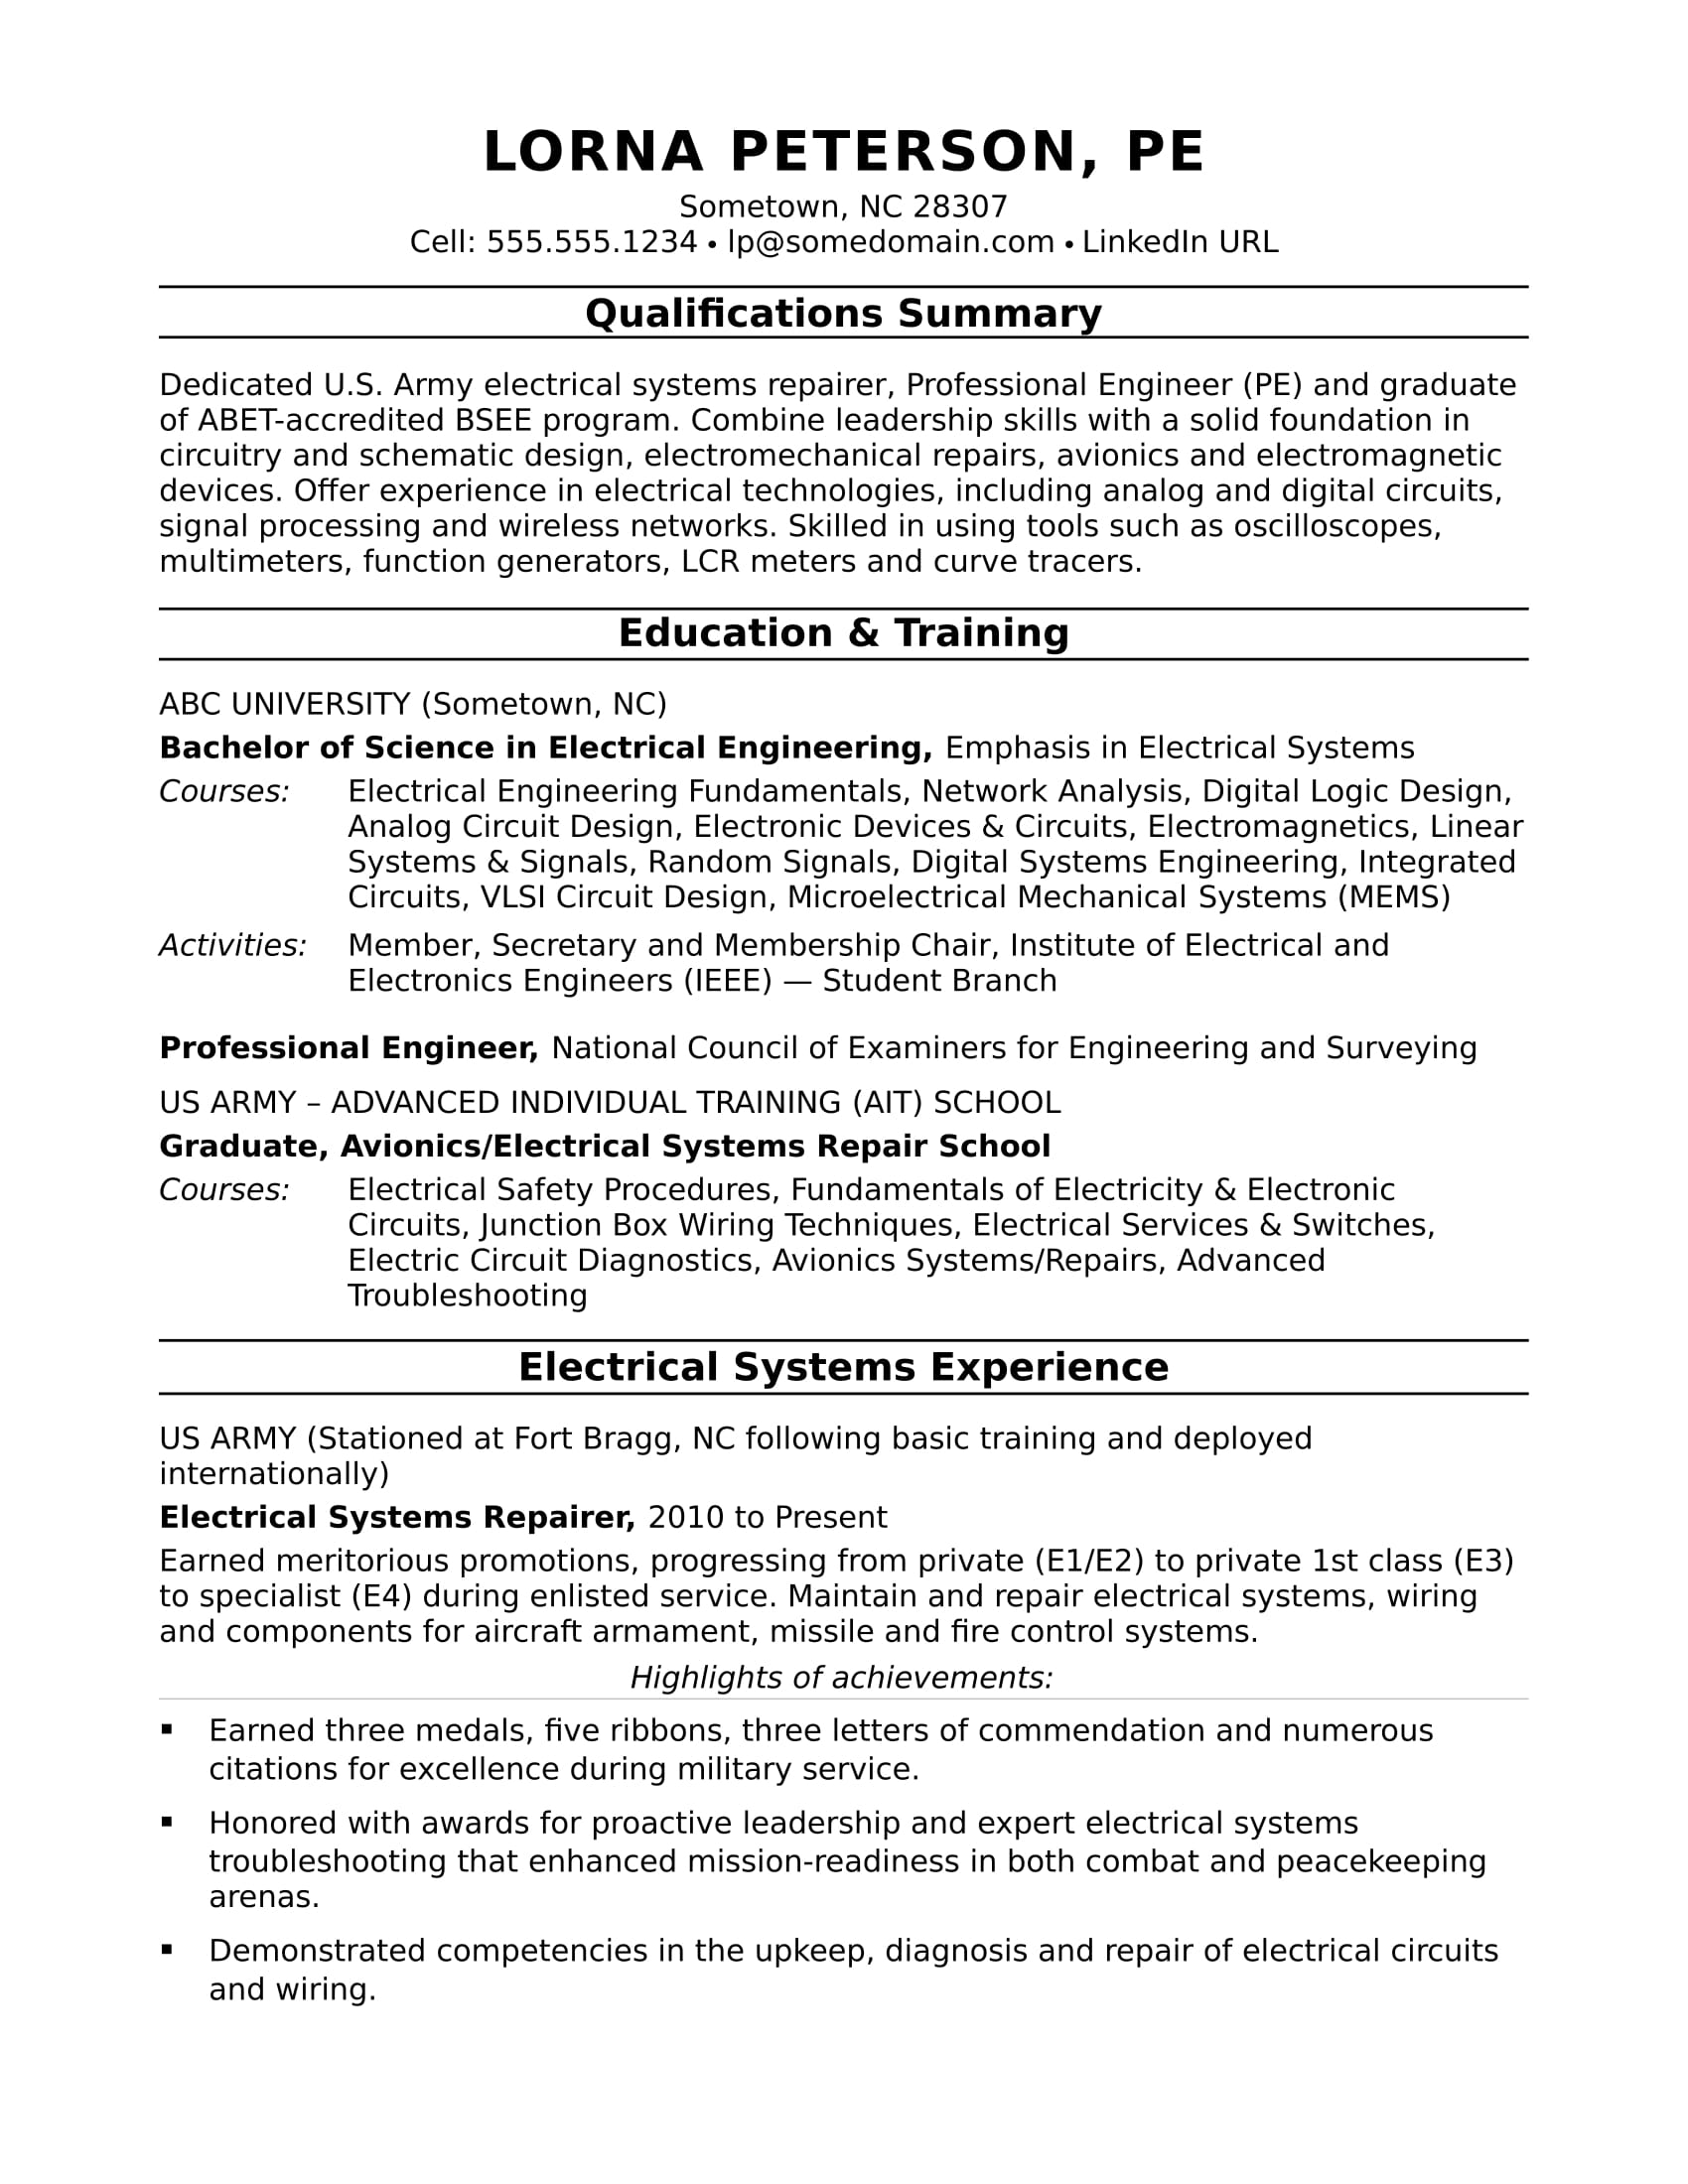 sample resume for a midlevel electrical engineer - Resume Sample For Electrical Engineer